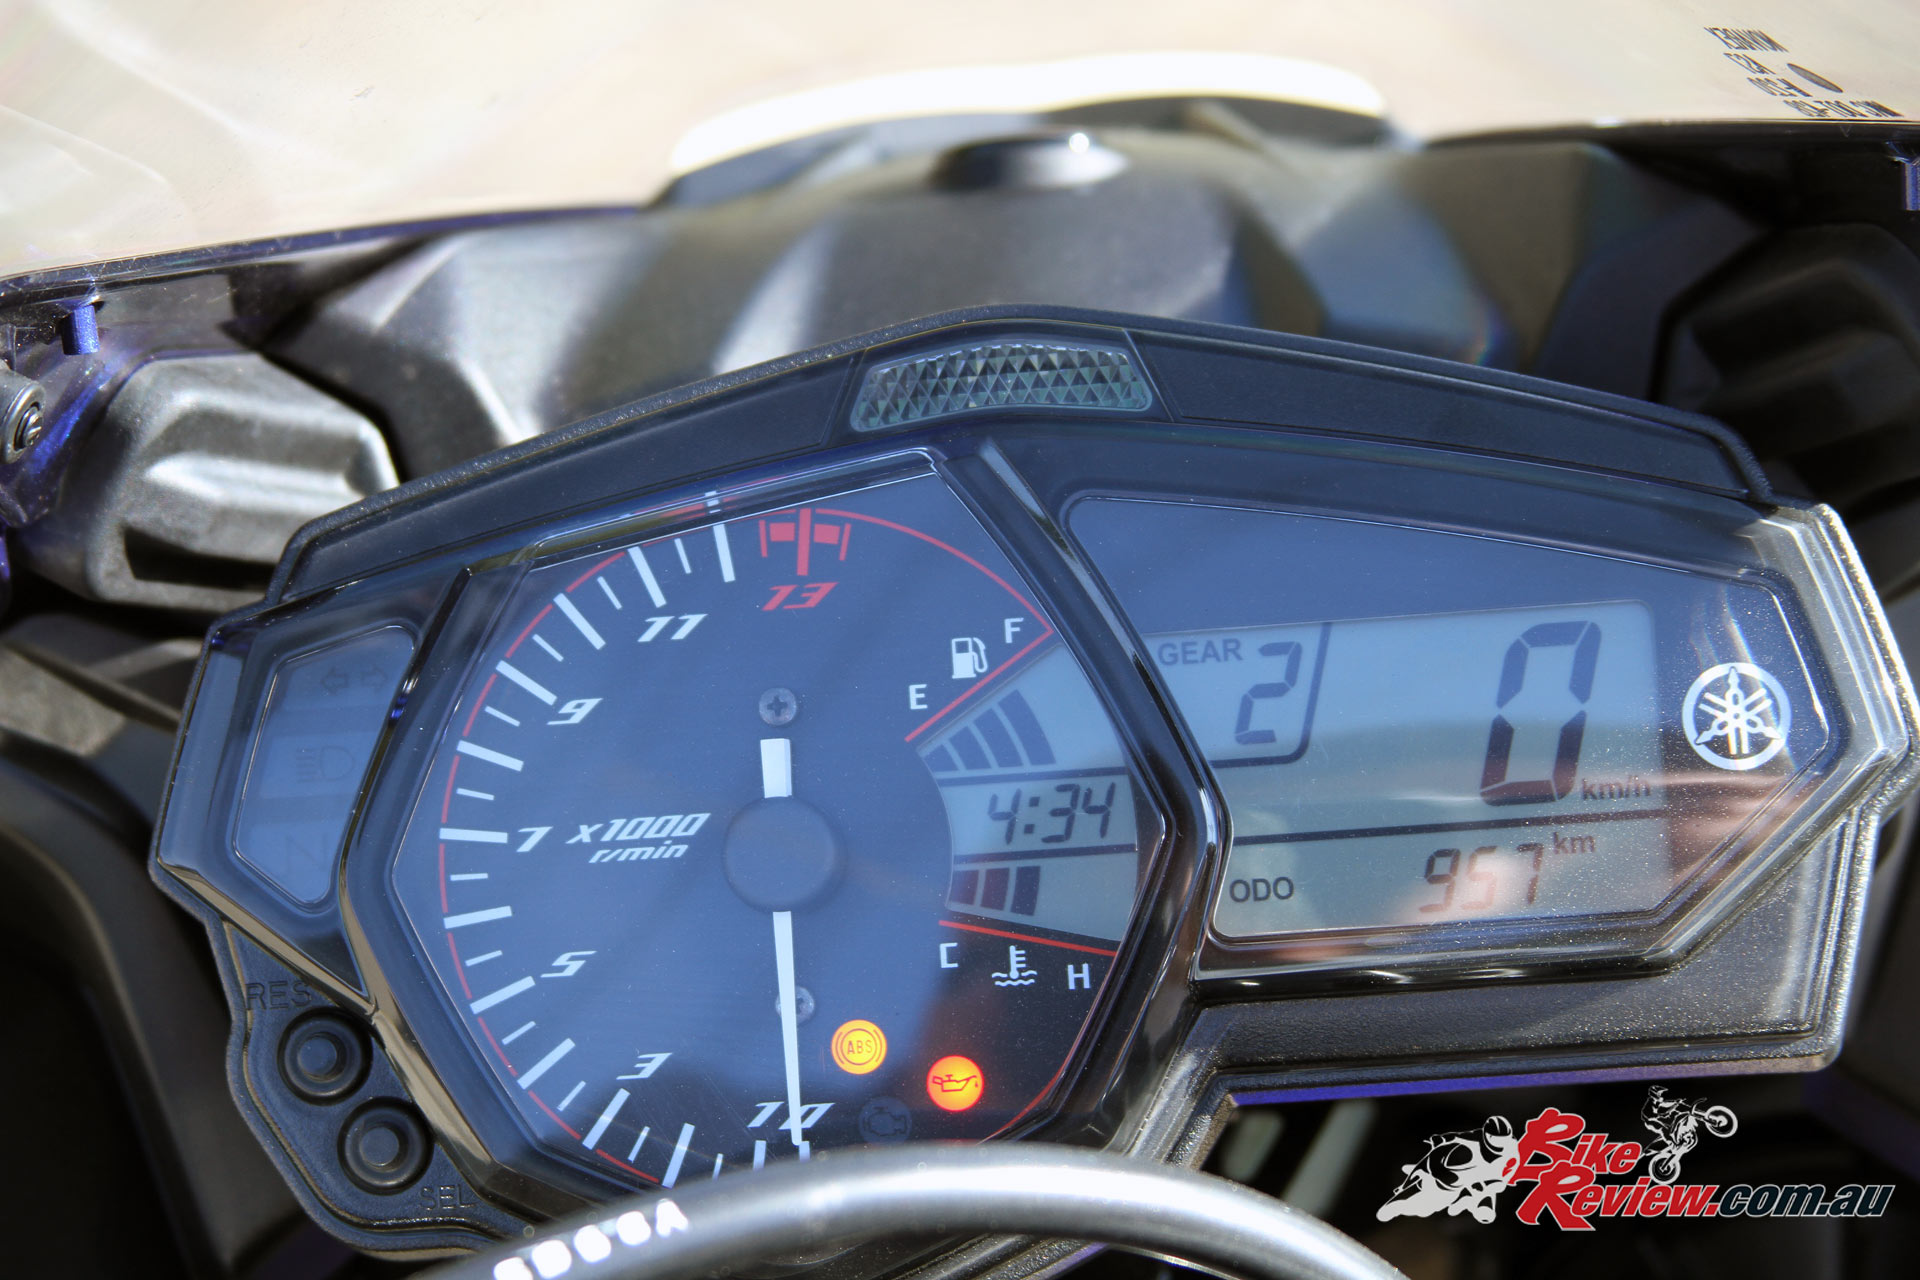 2016 Yamaha YZF R3 Analogue Tachometer Digital Multi Function Display With Gear Indicator